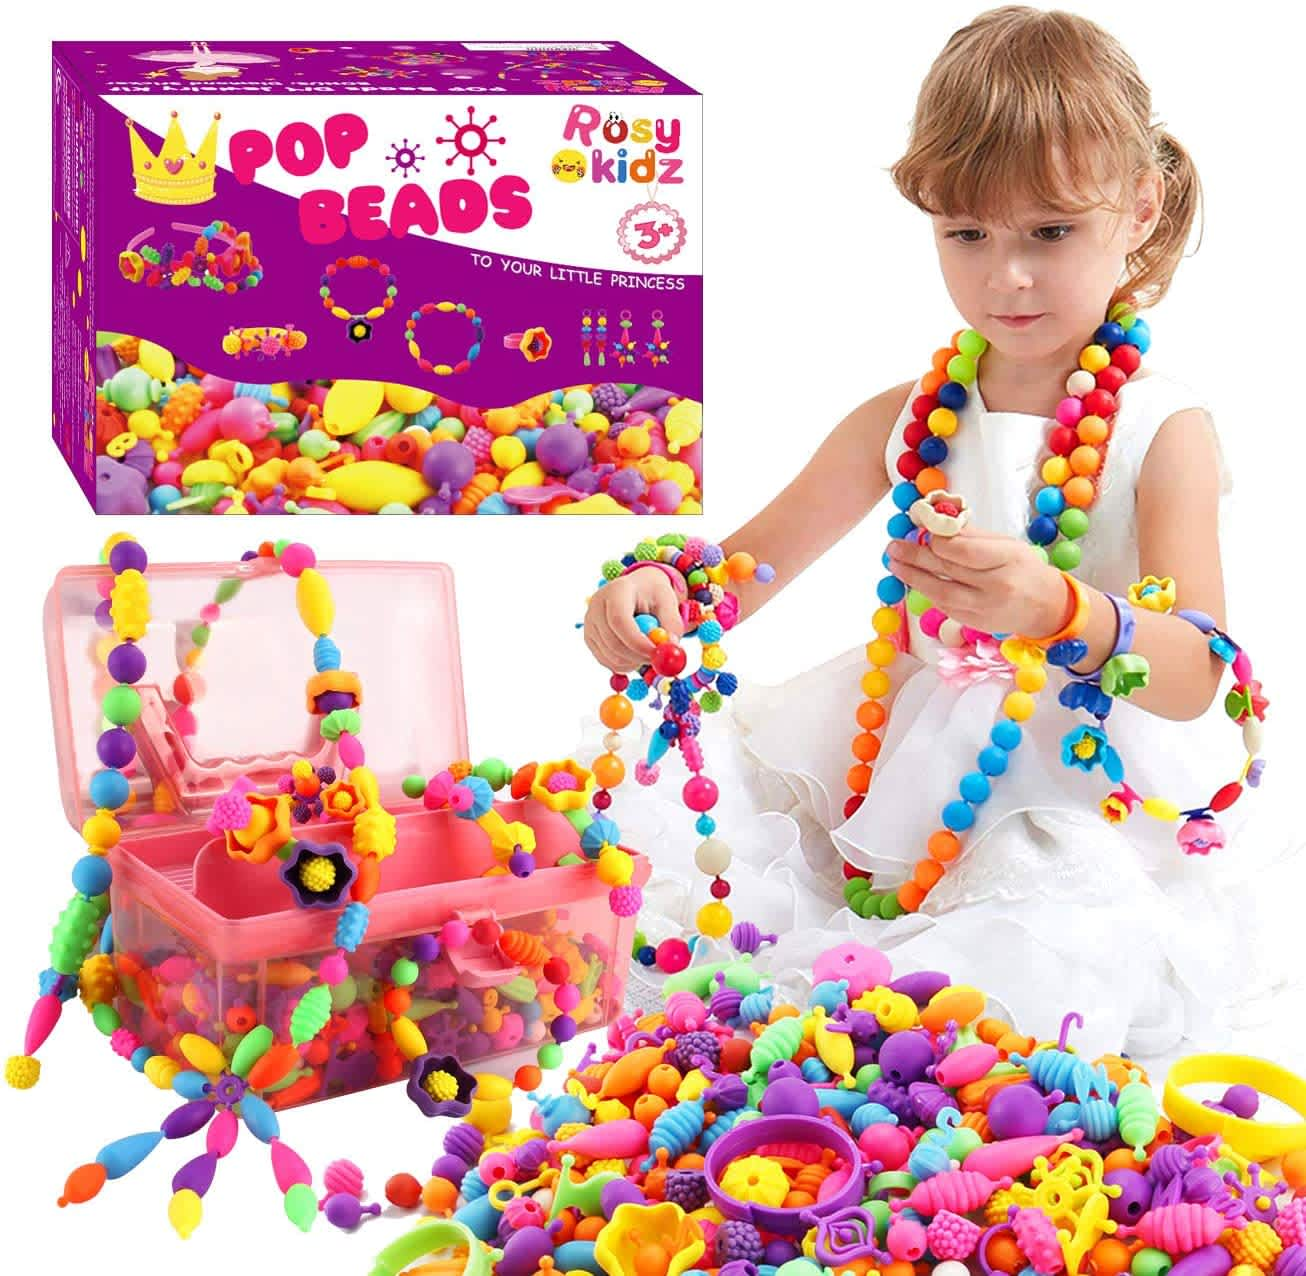 Rosykidz 600-Pc. Snap Pop Beads Set